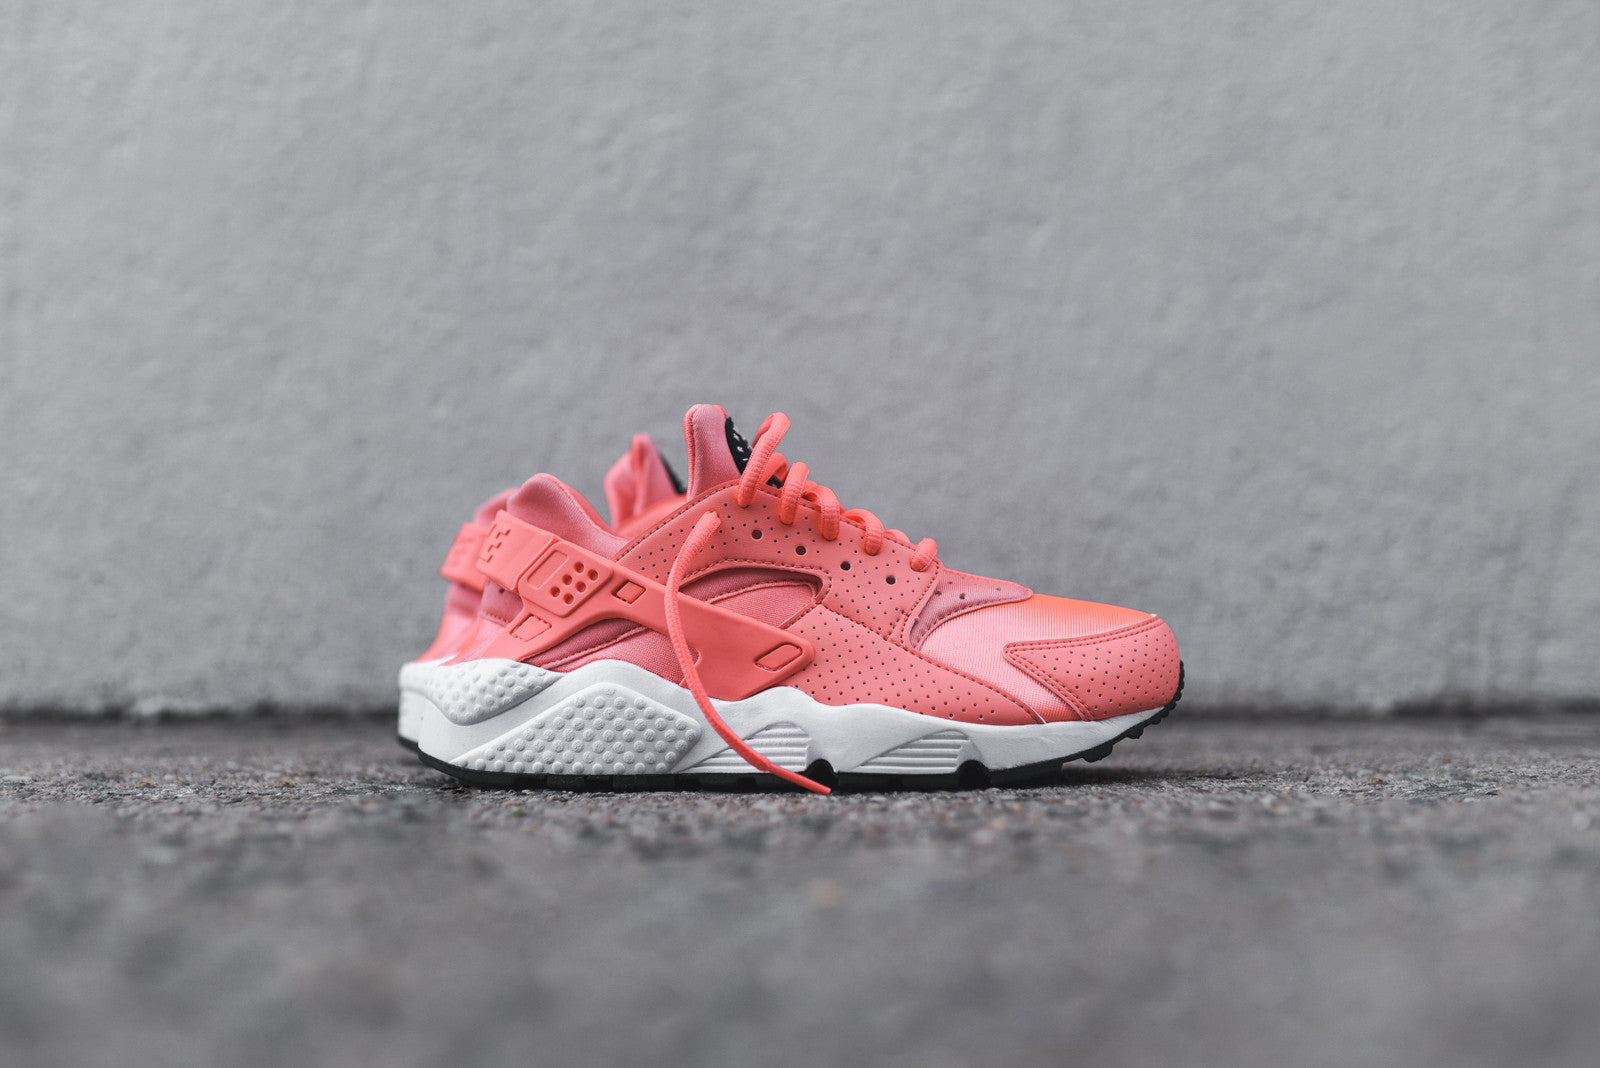 Nike WMNS Air Huarache Run - Atomic Pink